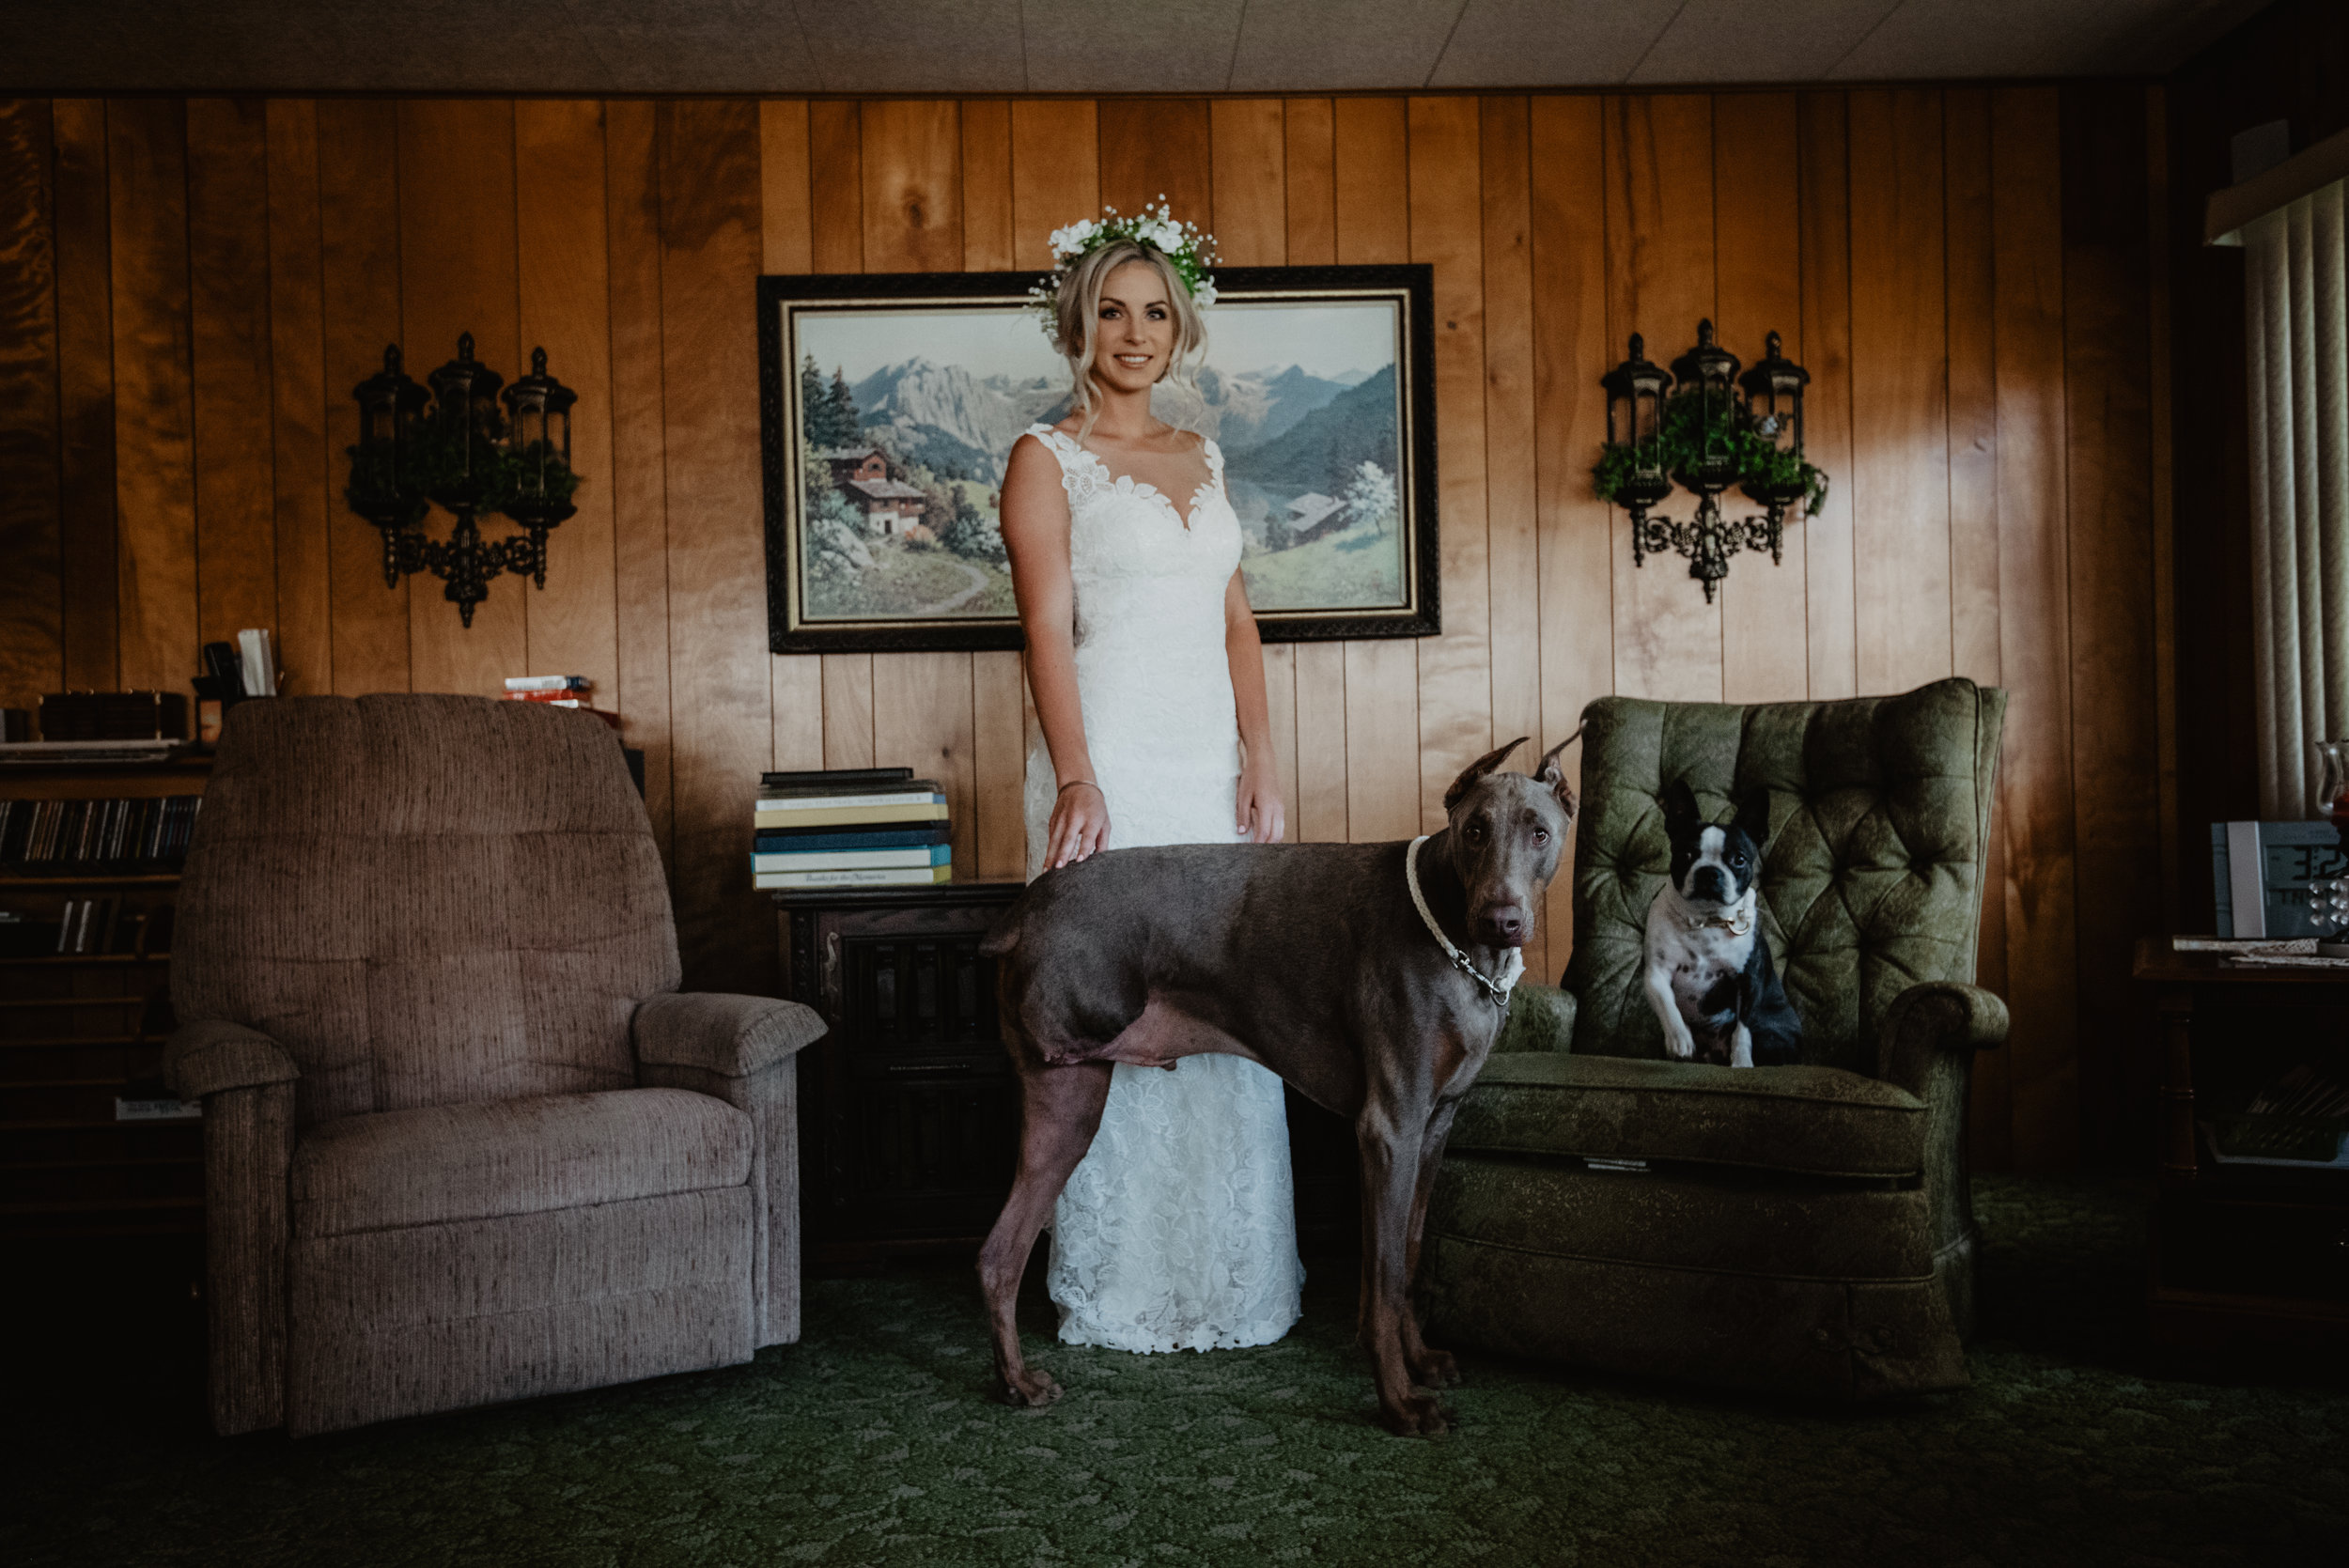 """A 2018 bride included her dogs in her wedding as the """"ring bearer"""" and """"flower girl"""" during the ceremony."""